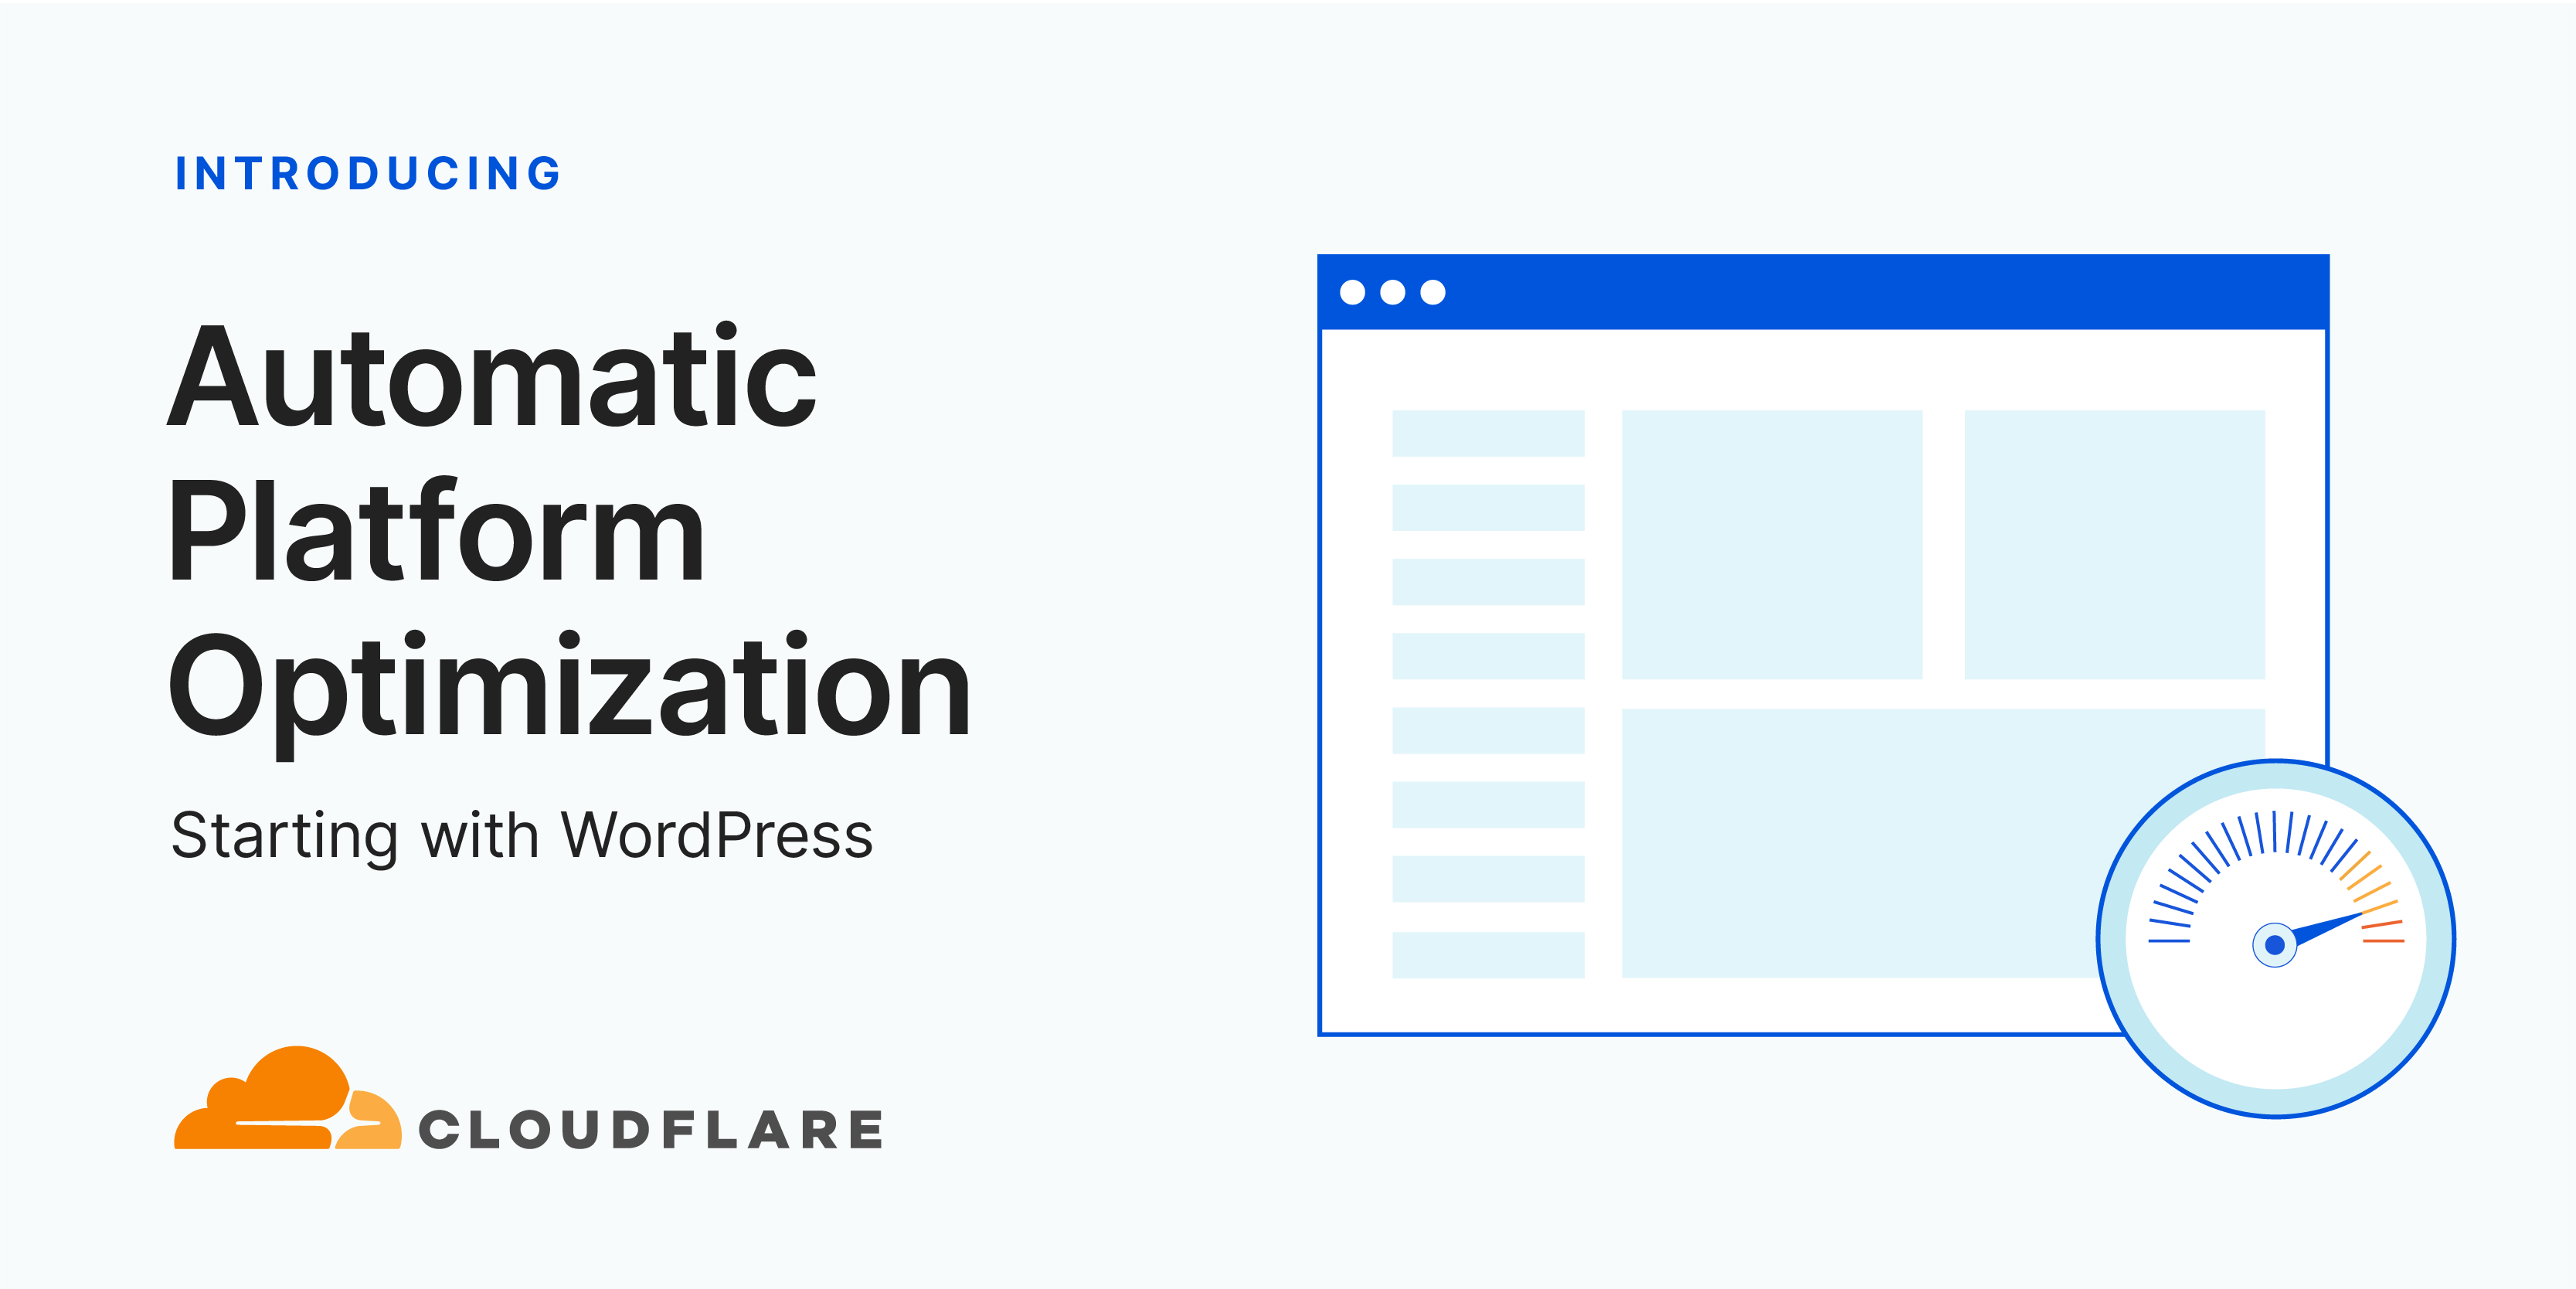 Introducing Automatic Platform Optimization, starting with WordPress